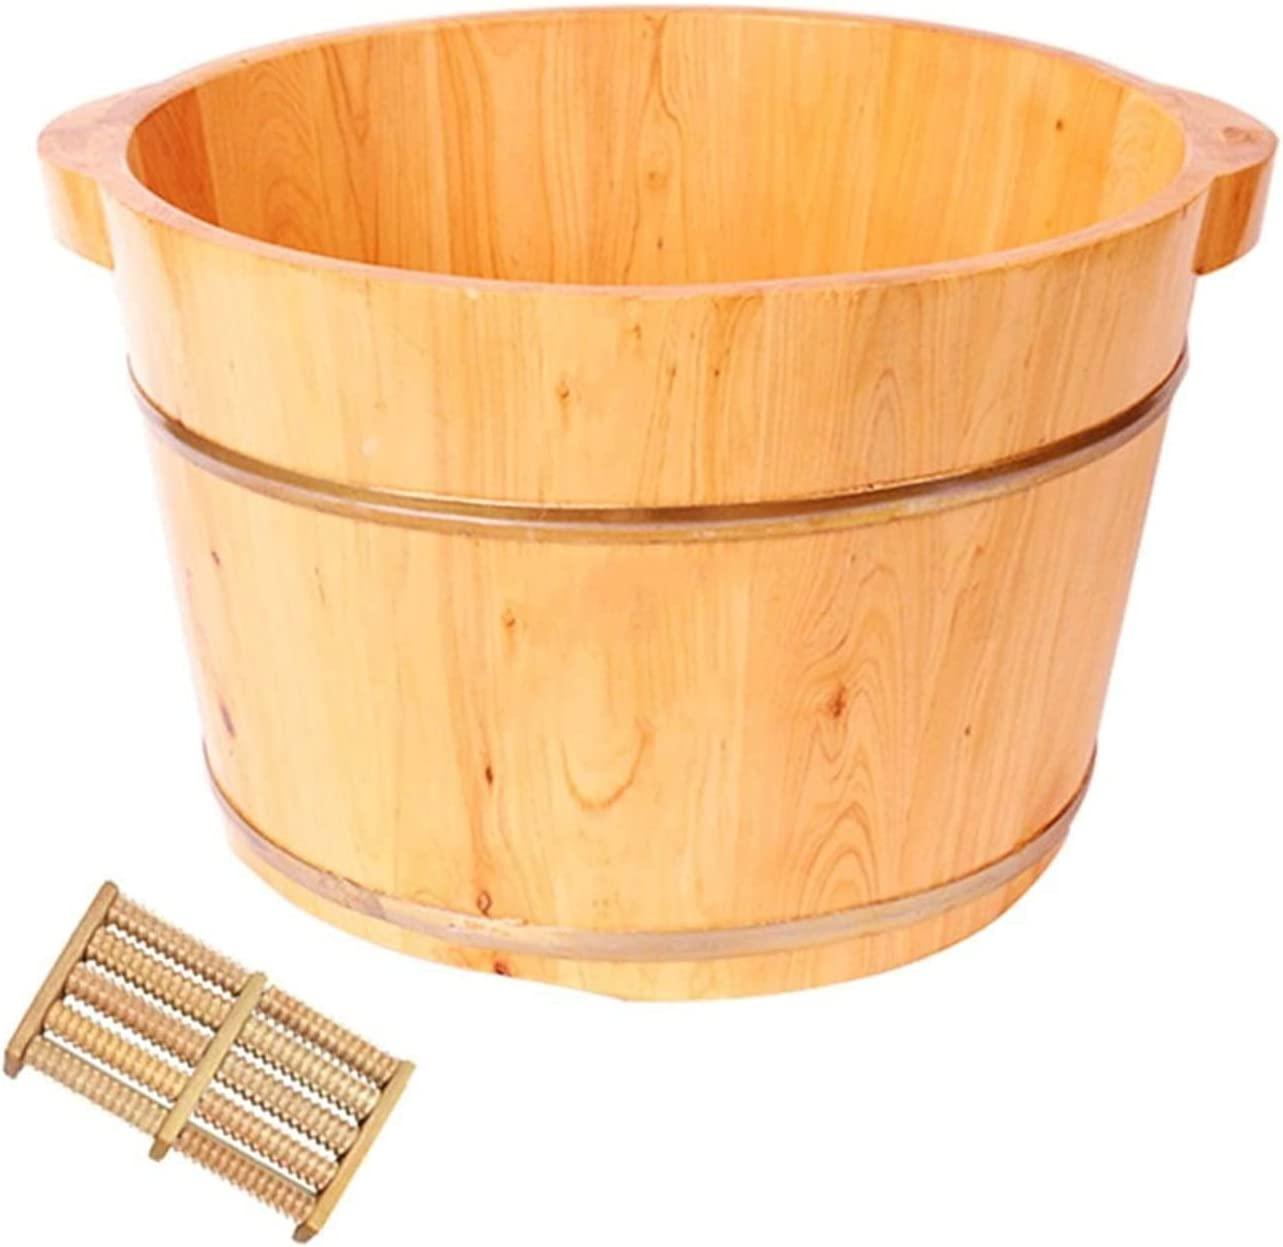 LIZHIQIANGLZQzuyupen OFFicial shop Max 62% OFF Pedicure Bowl Wooden and Sturdy Basin Foot